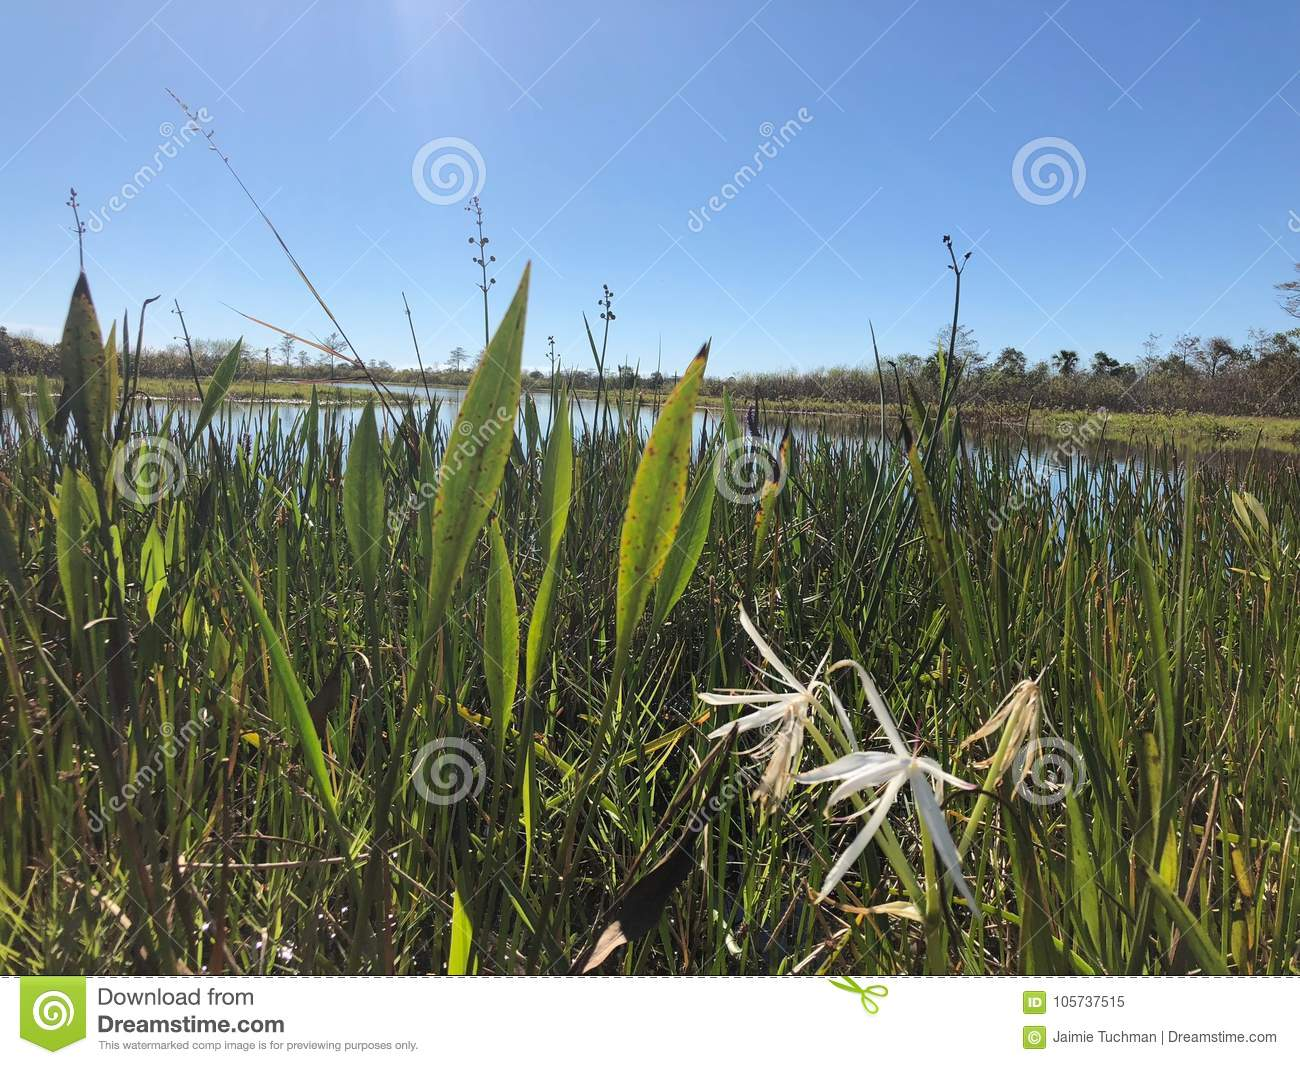 swamp grass and wildflowers in the marsh